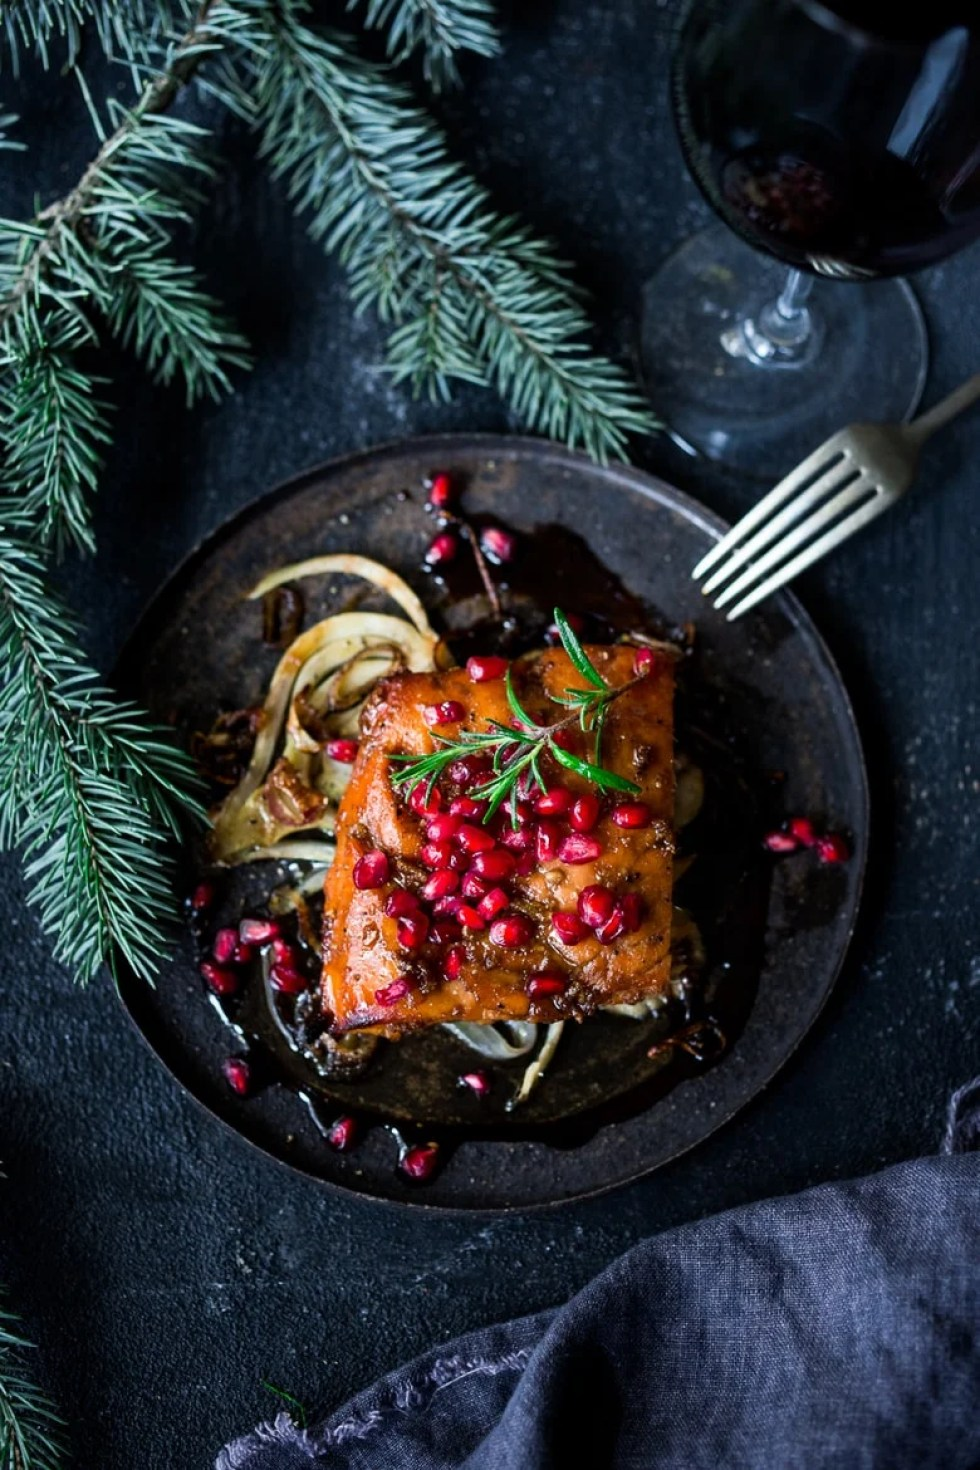 Roasted Pomegranate Salmon with braised fennel - a healthy and festive holiday dinner that can be made in under 30 minutes. | www.feastingathome.com